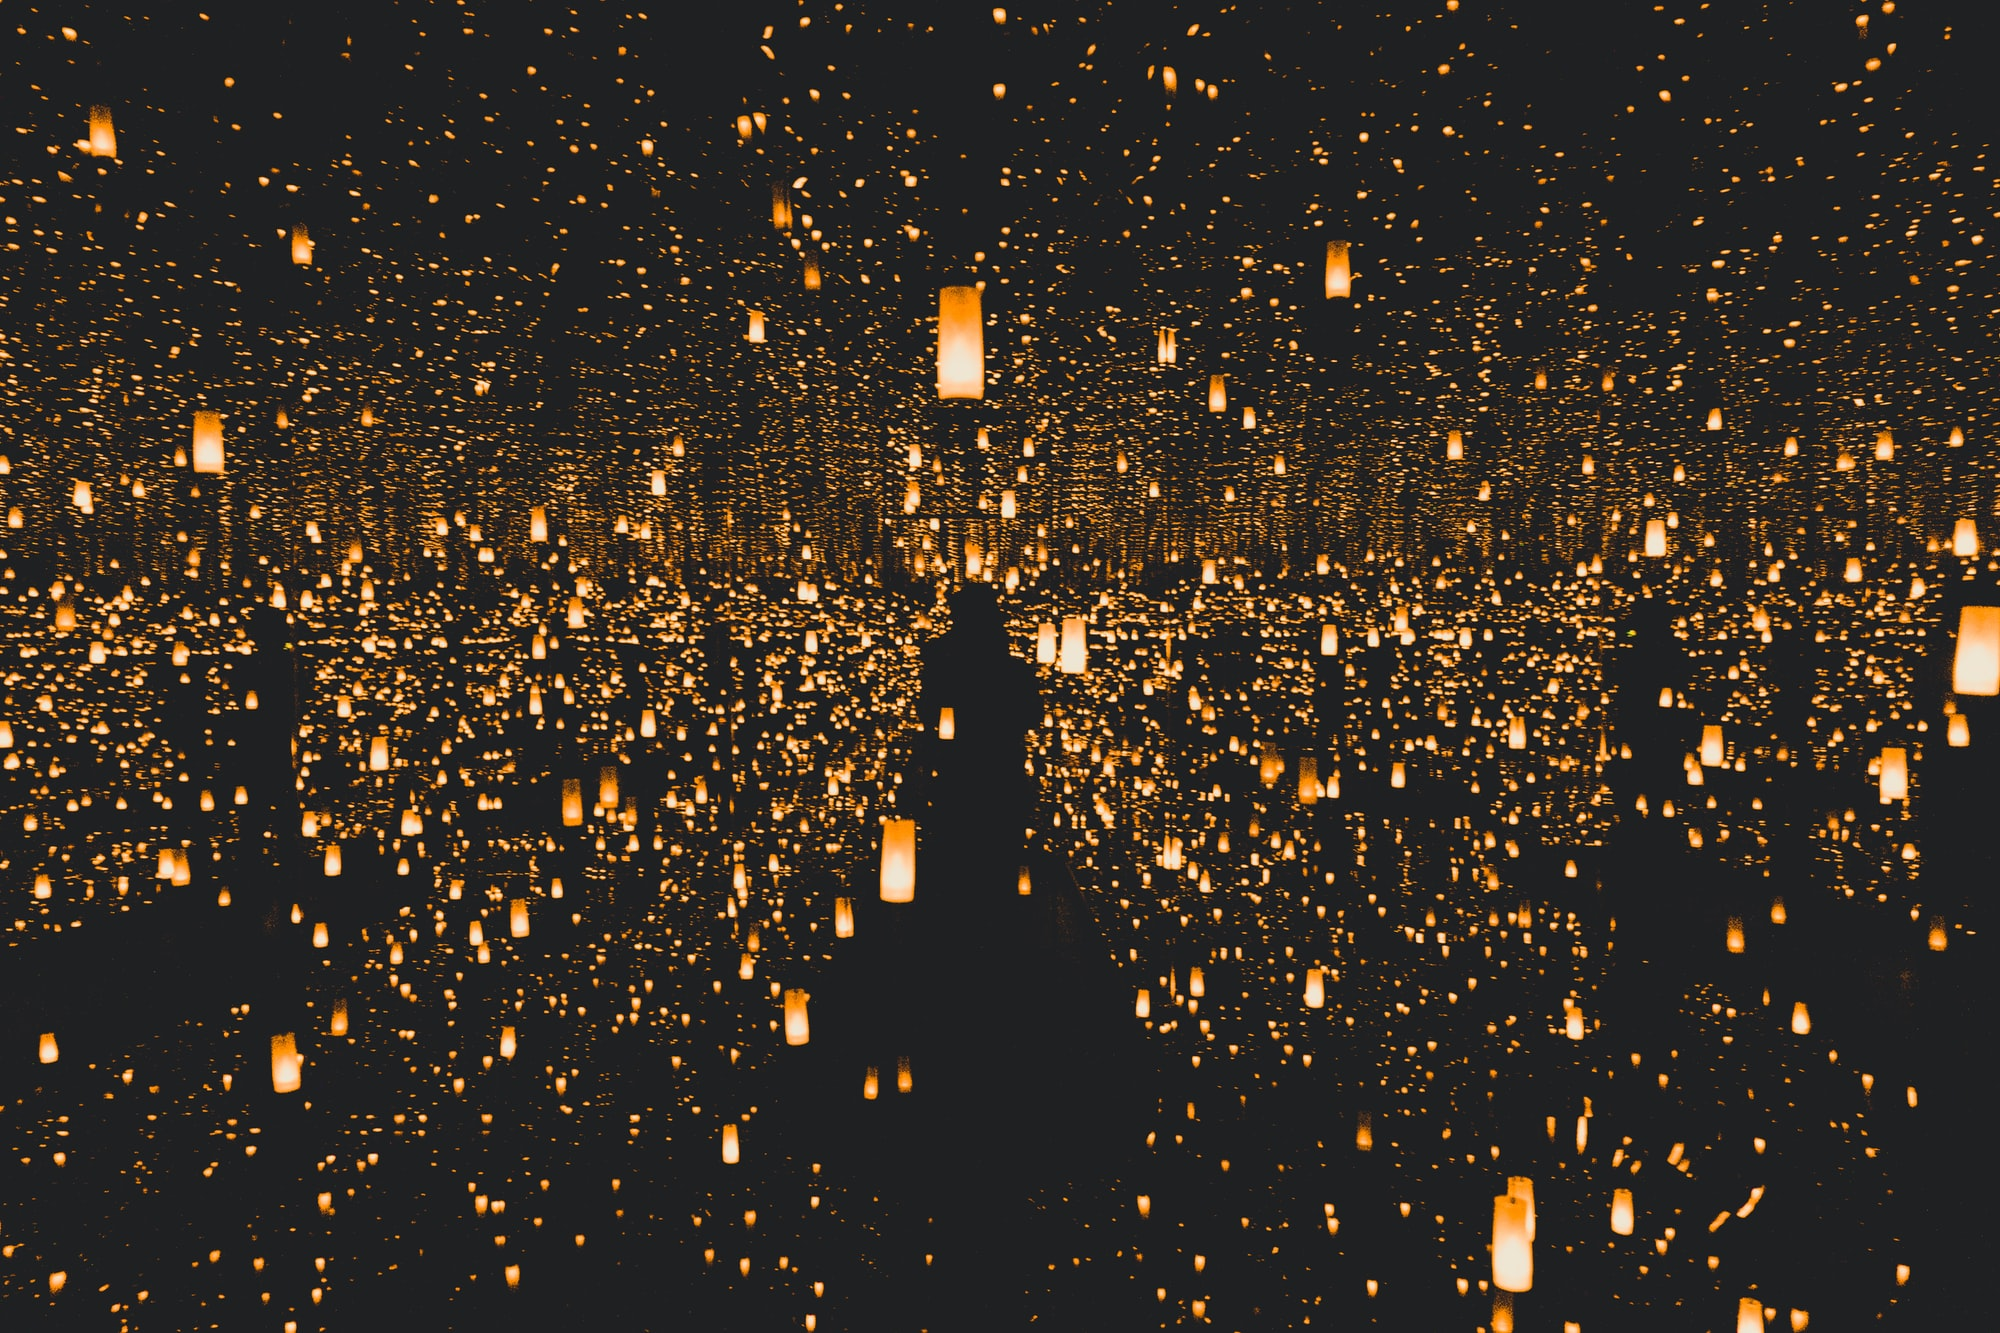 a mood picture with hundreds of lamps